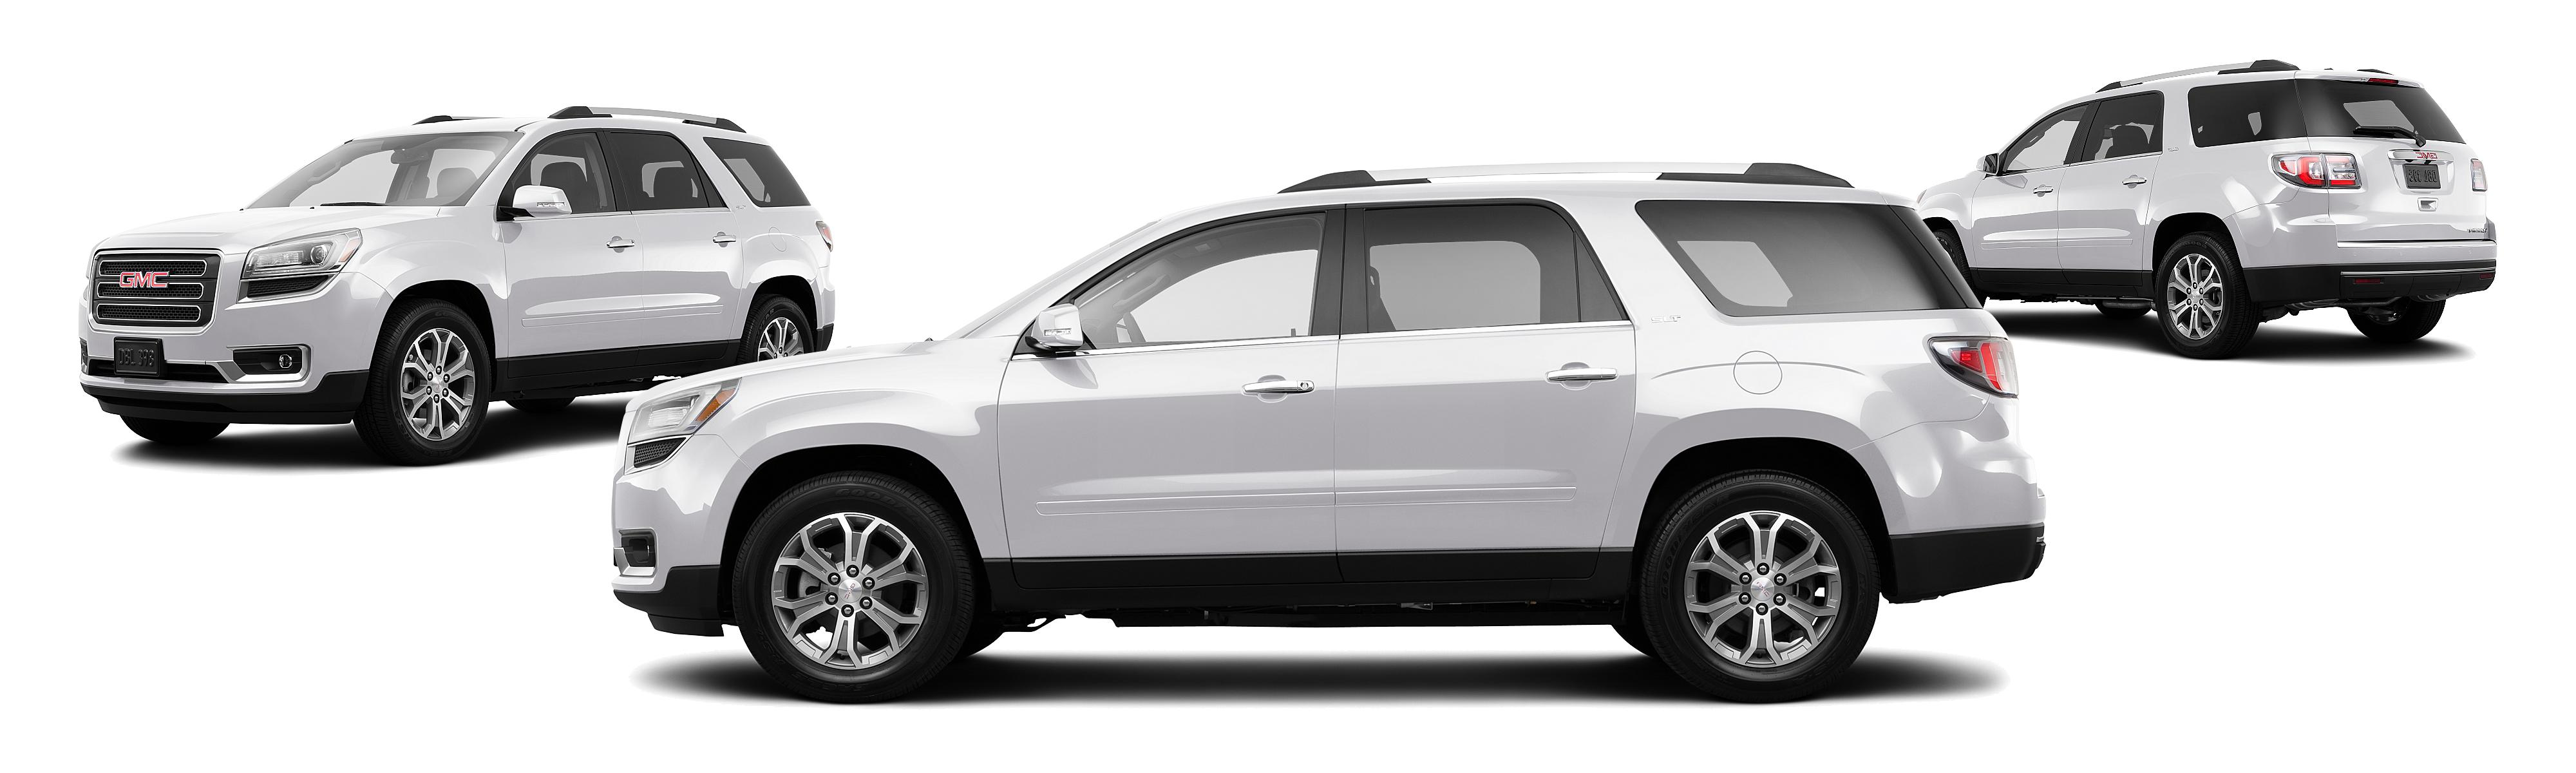 media sleek me detail gmc acadia content and pages sculpted news en